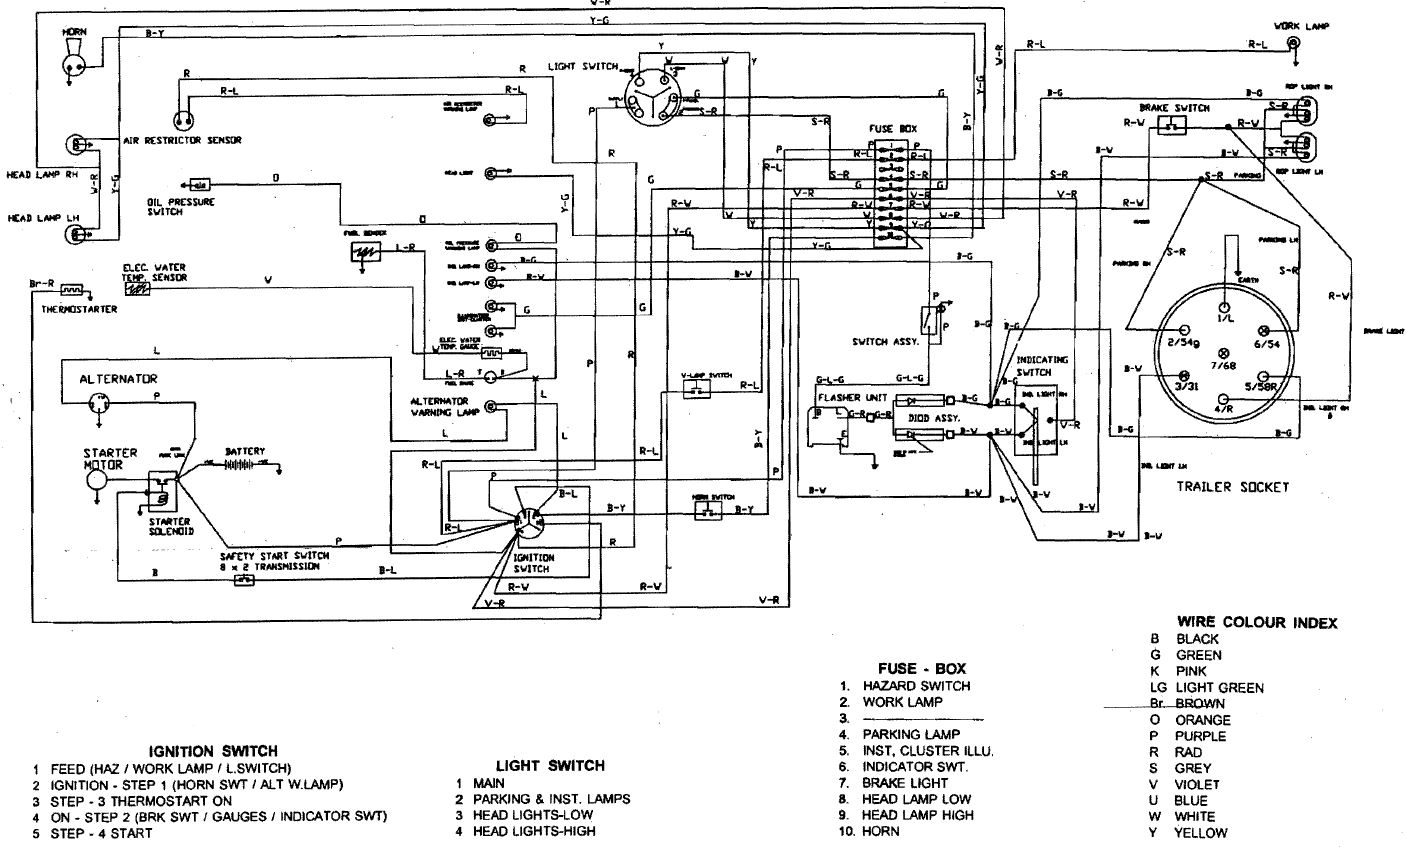 20158463319_b82d524c3d_o ignition switch wiring diagram john deere lawn mower wiring diagrams at bakdesigns.co